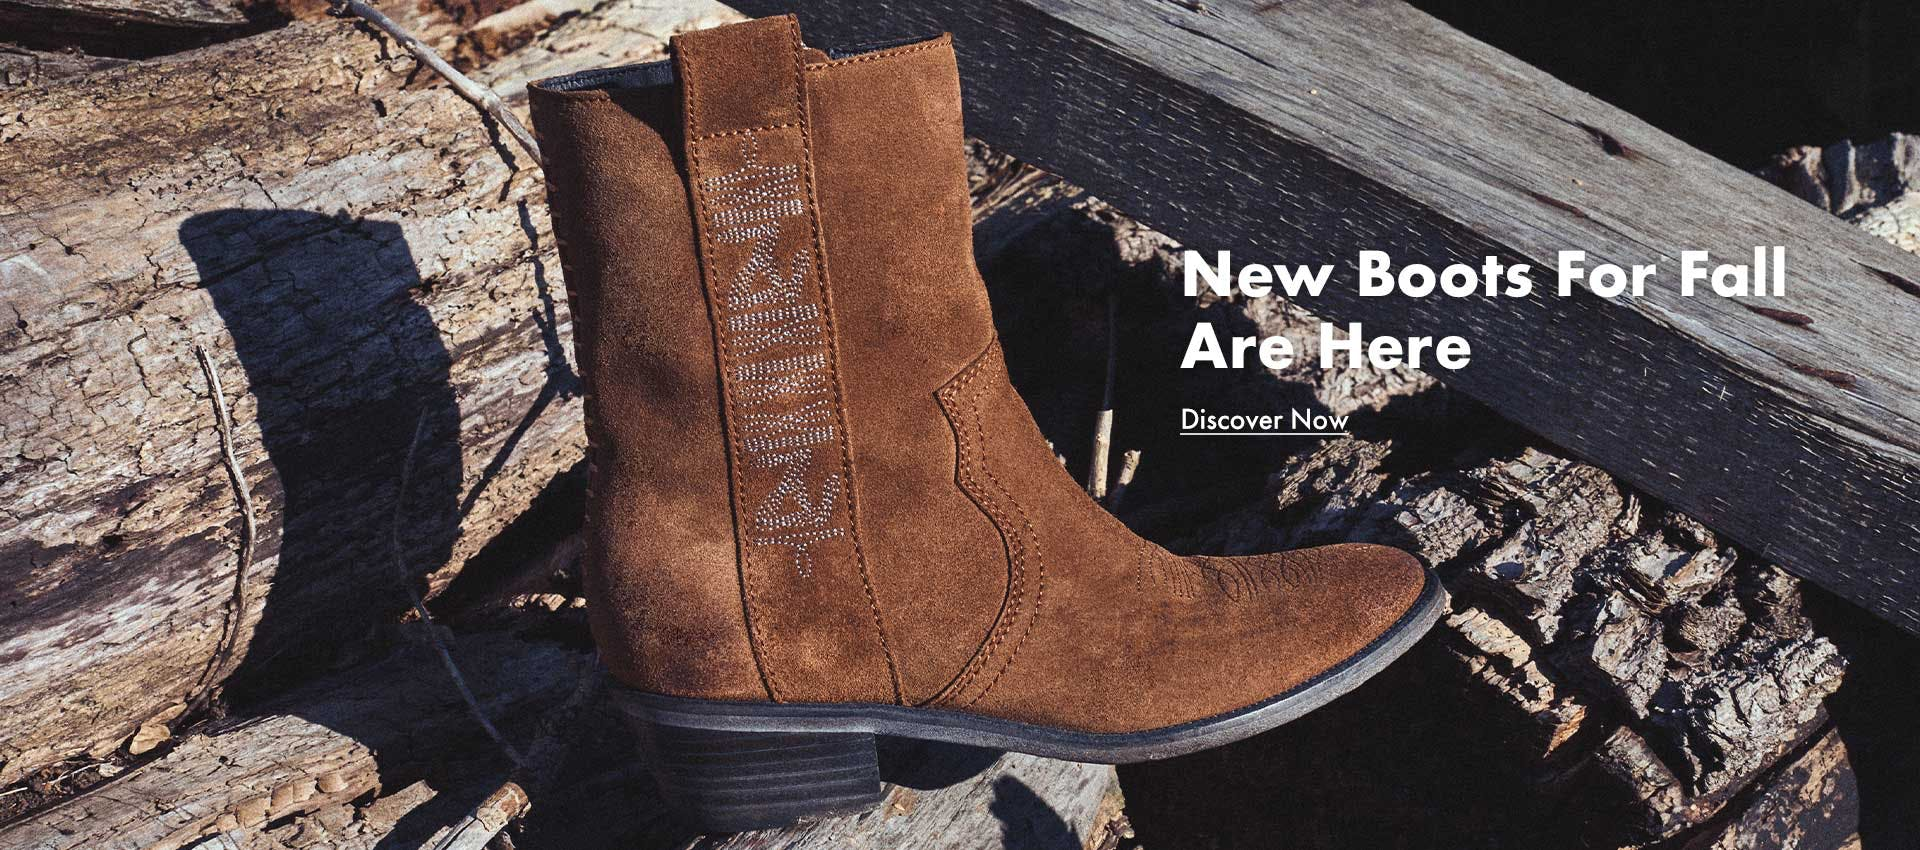 New Boots For Fall September 2021